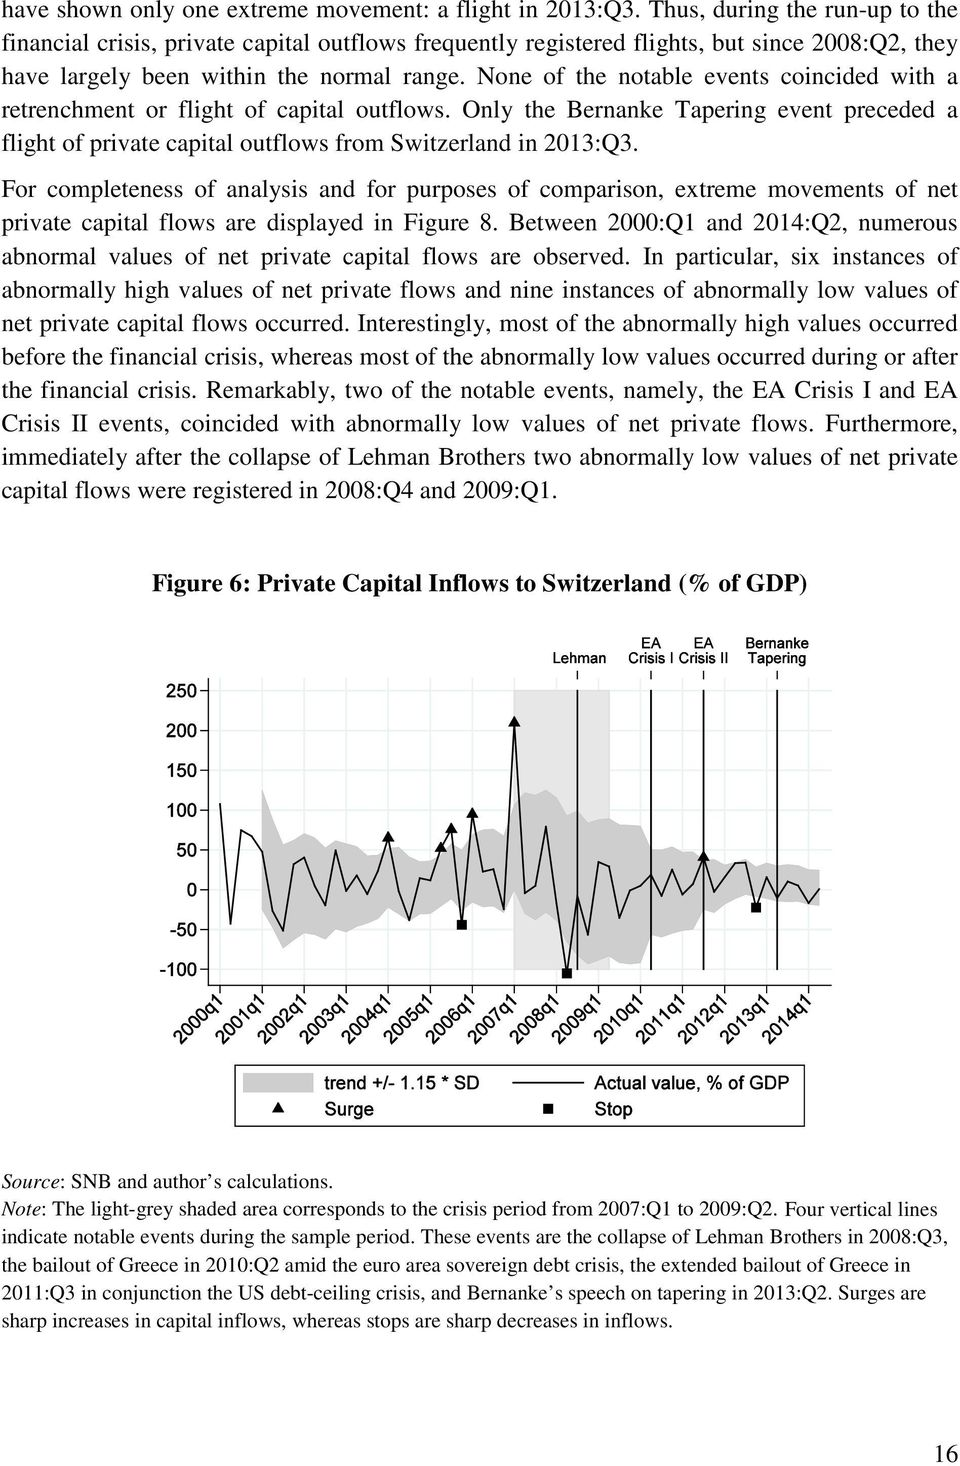 None of the notable events coincided with a retrenchment or flight of capital outflows. Only the Bernanke Tapering event preceded a flight of private capital outflows from Switzerland in 2013:Q3.